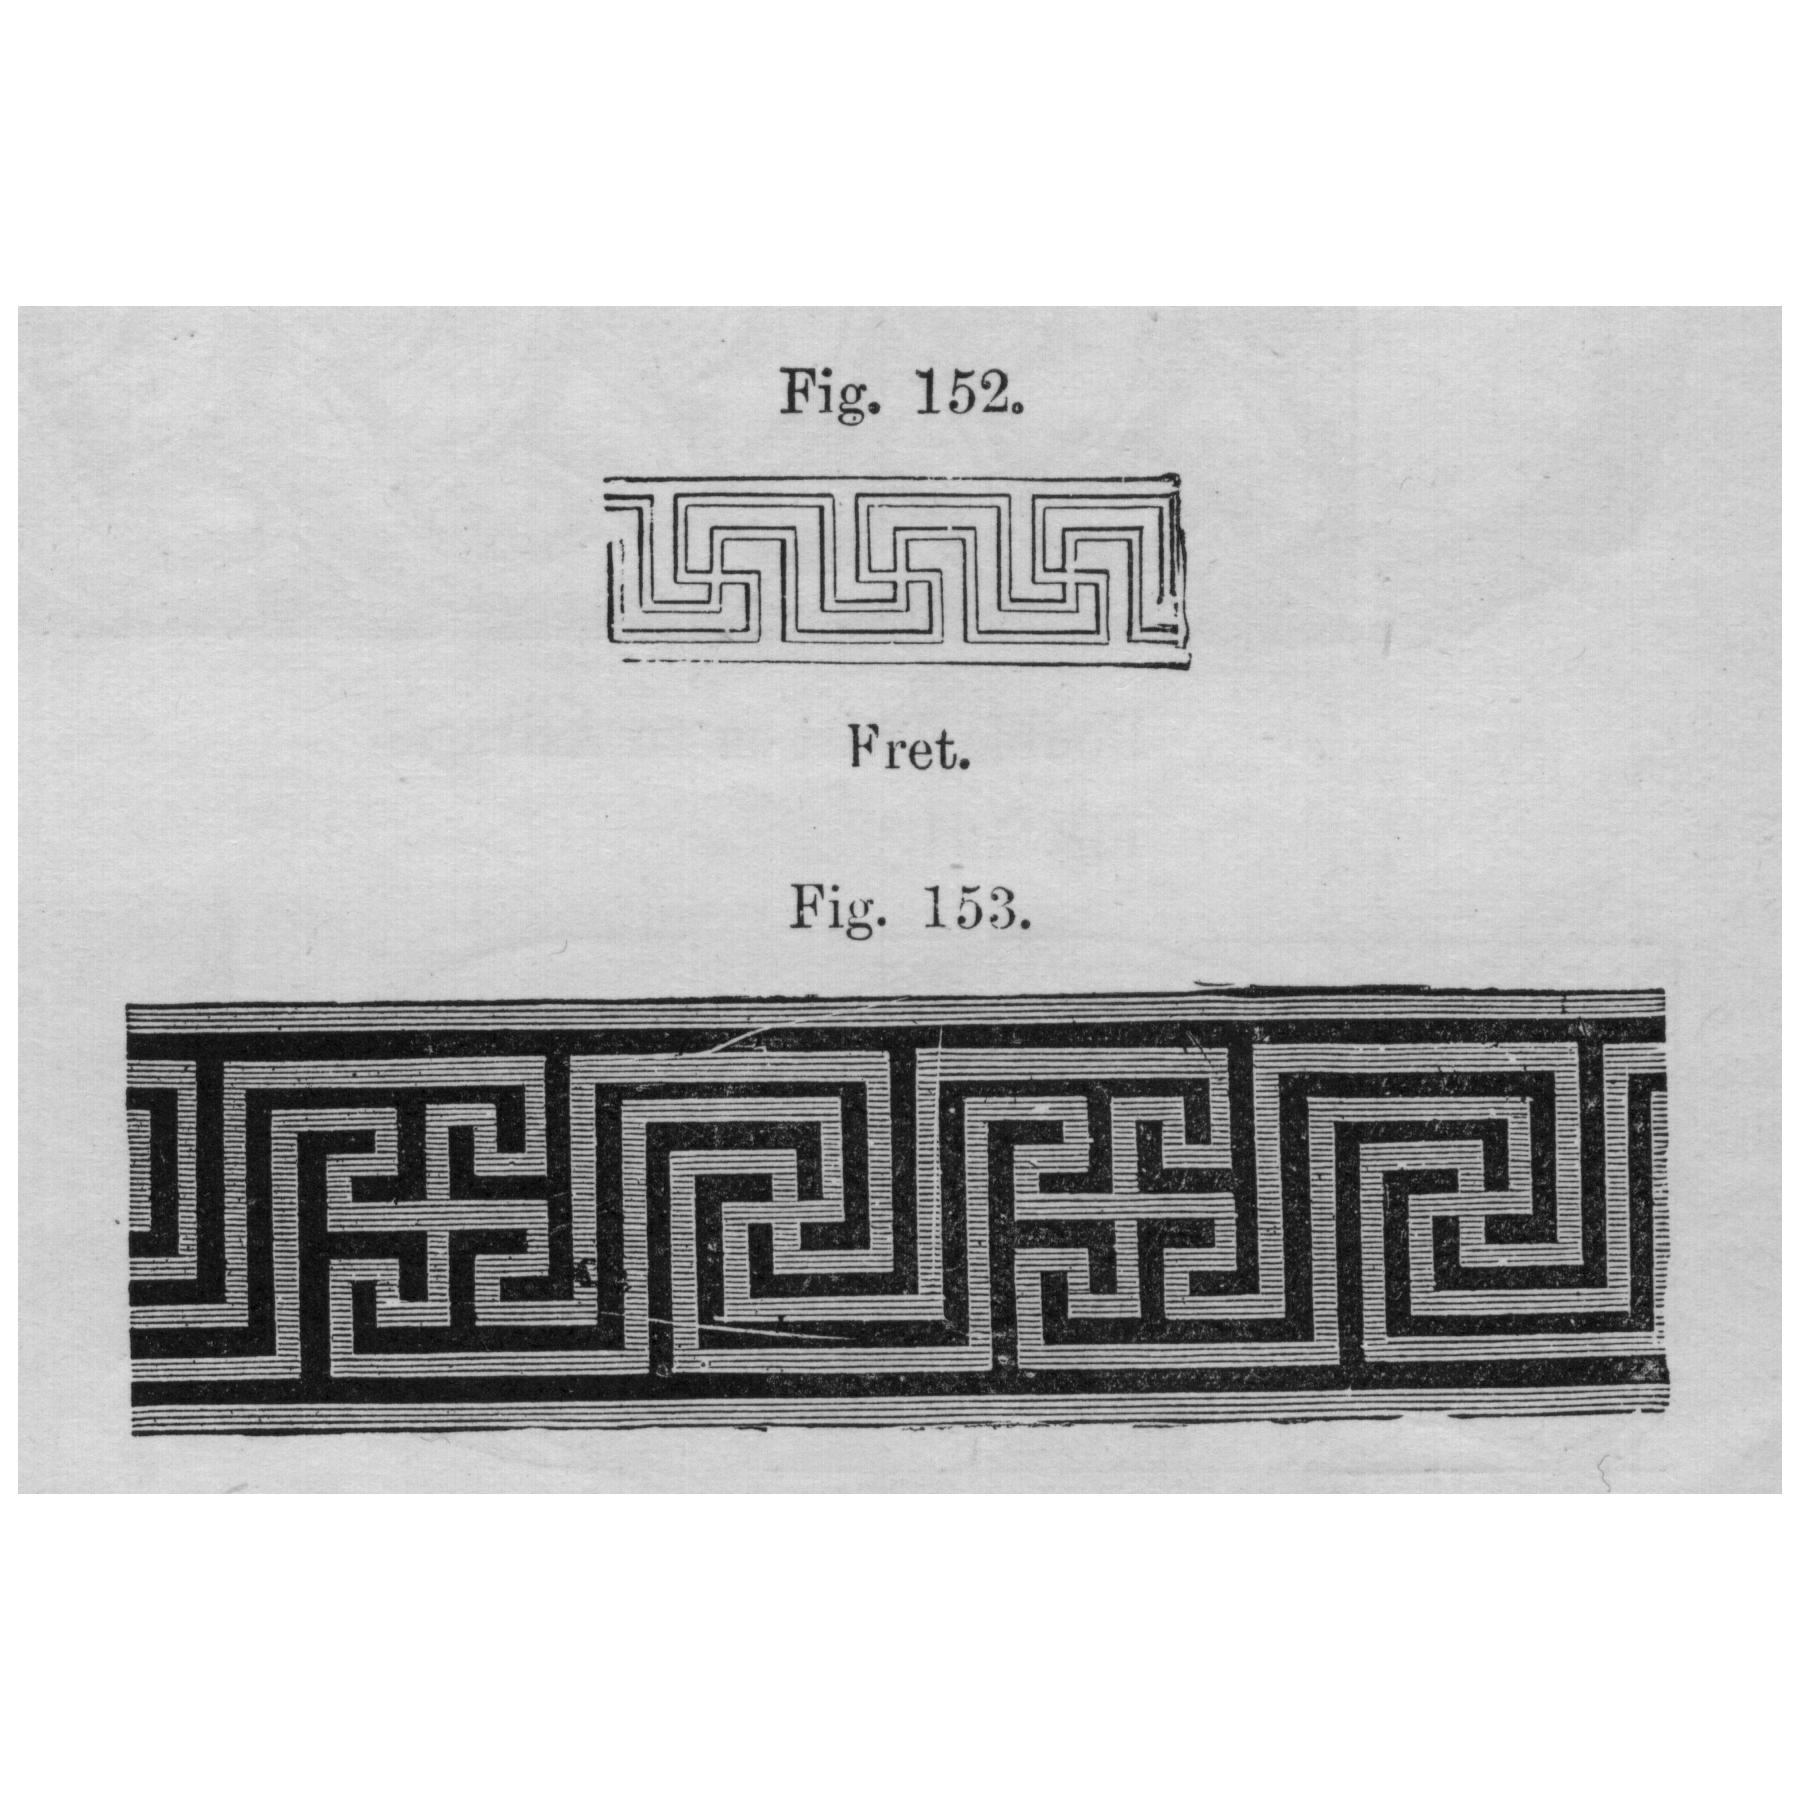 An architectural rendering of a Greek fret, also called a meander, is a decorative border created from one continuous line forming a repetitive pattern.